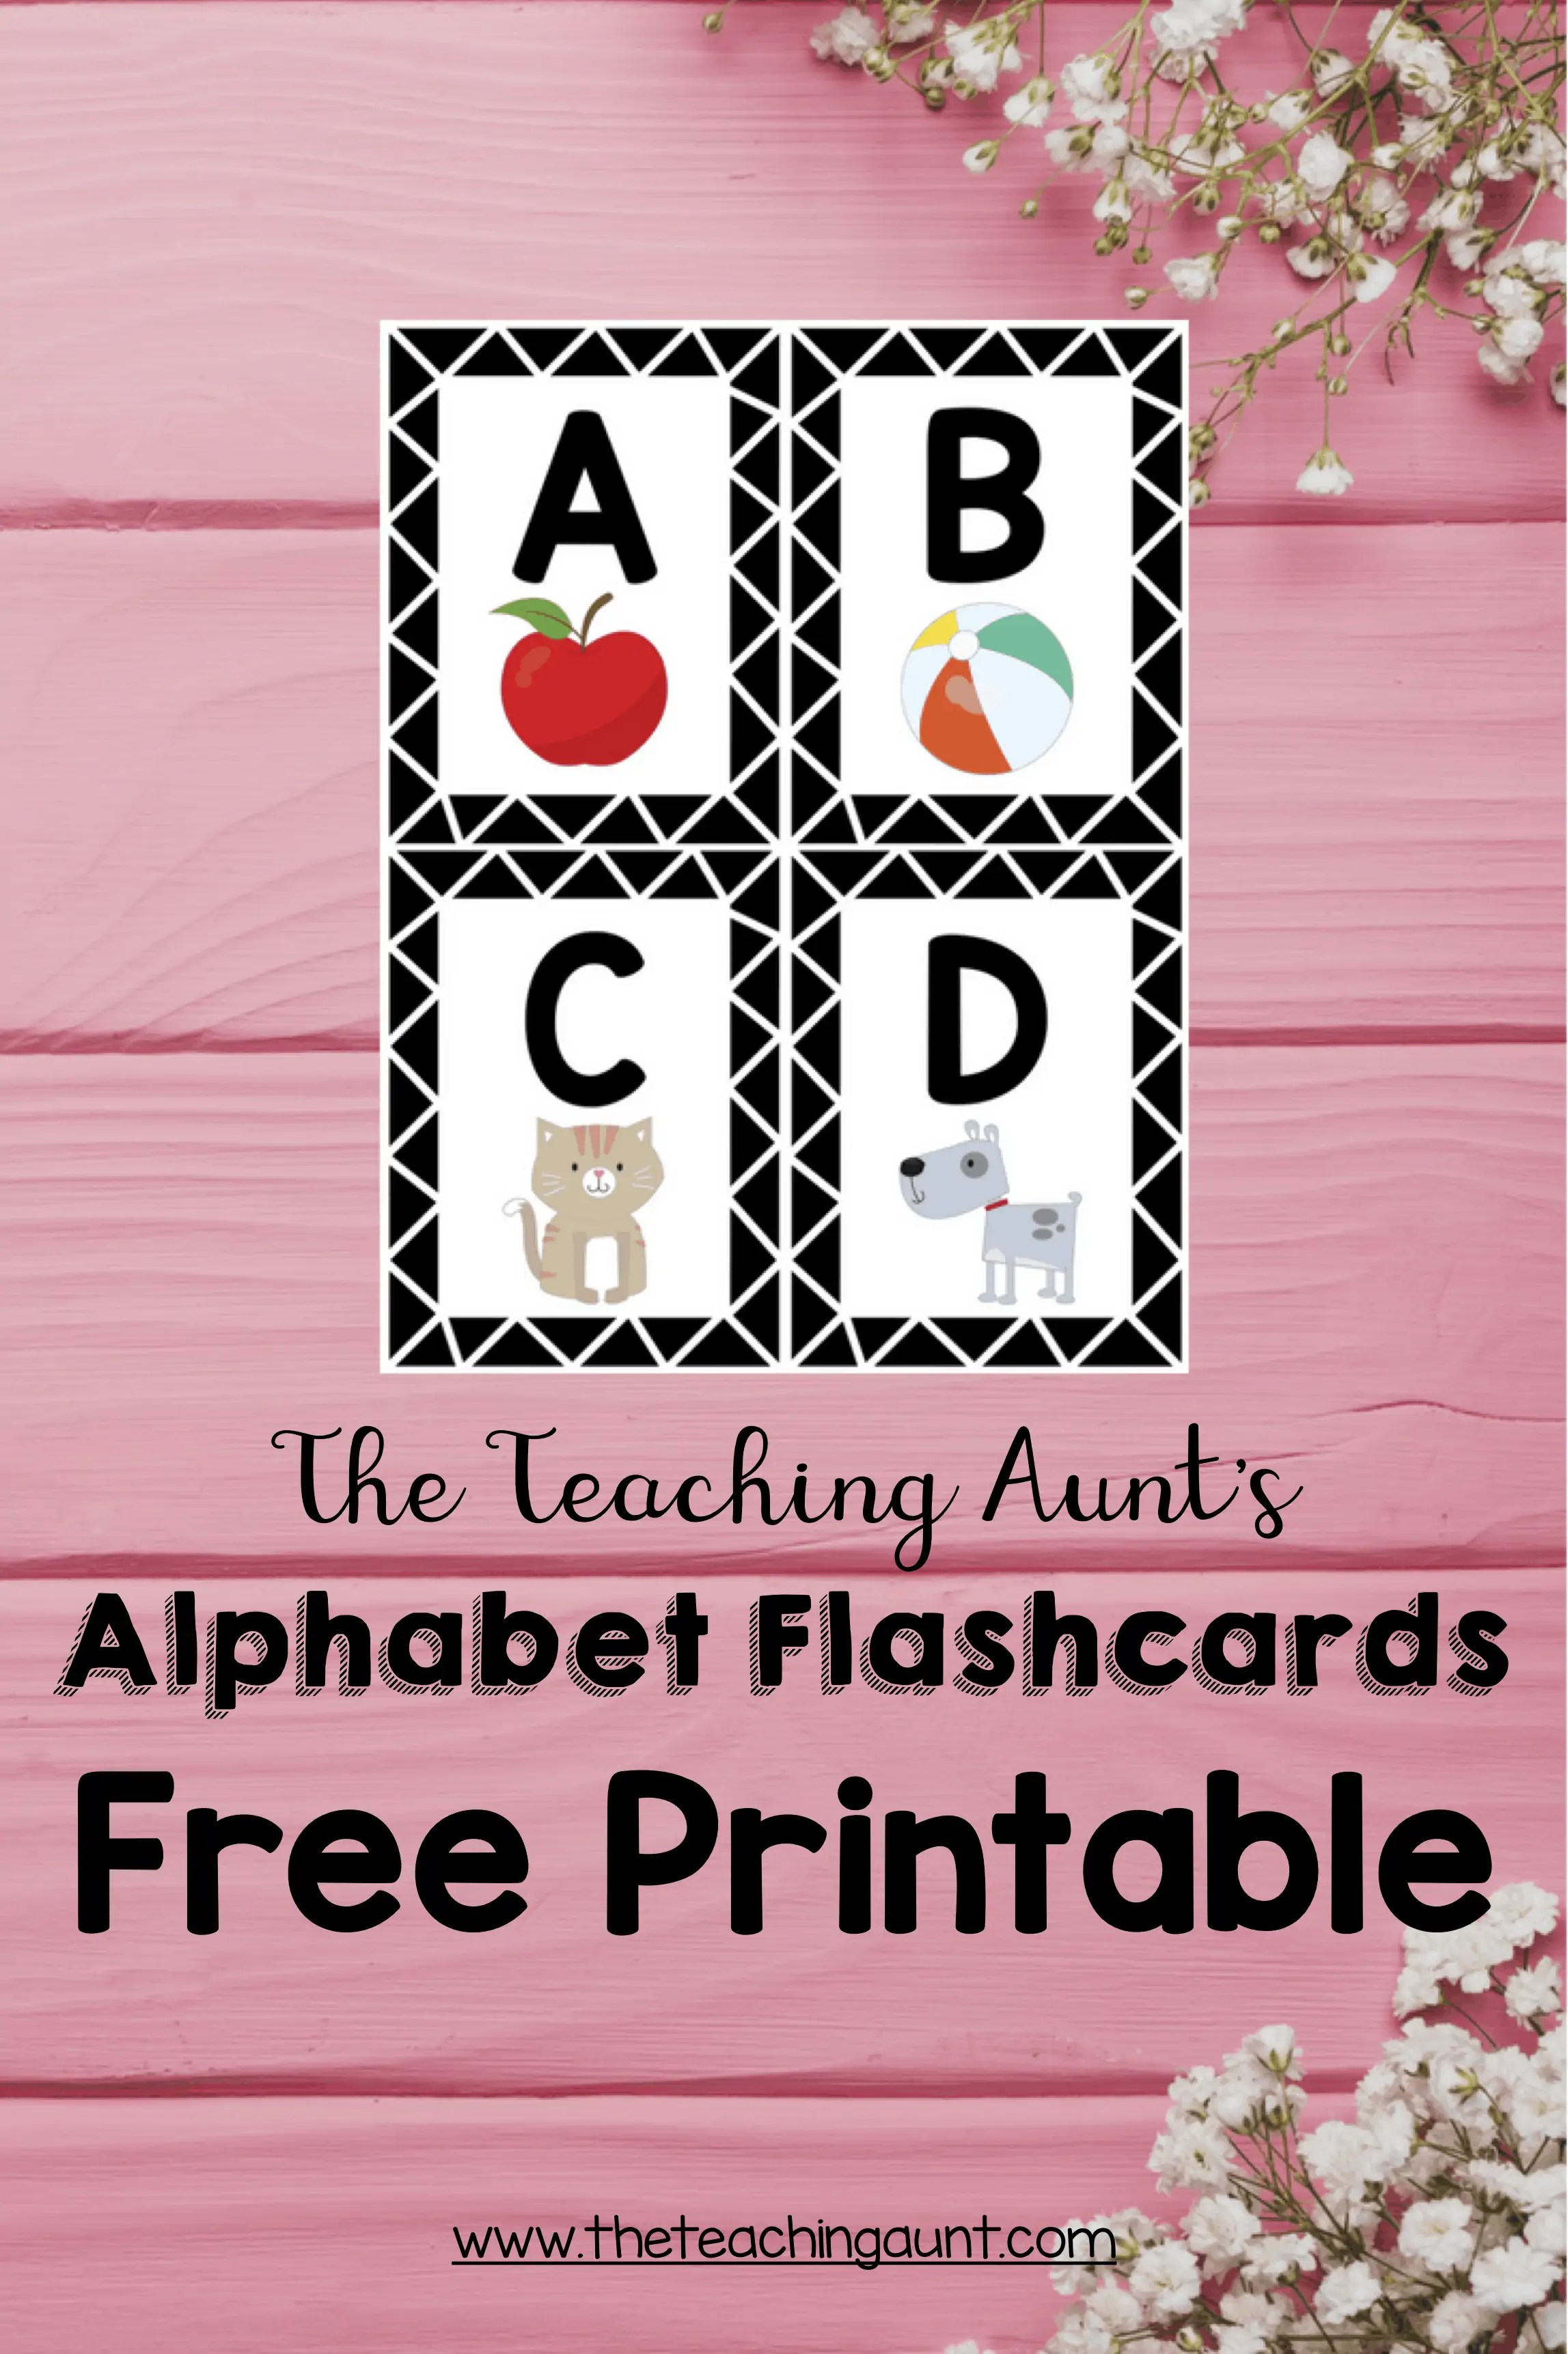 picture relating to Free Printable Abc Flashcards named Alphabet Flashcards Free of charge Printable - The Coaching Aunt